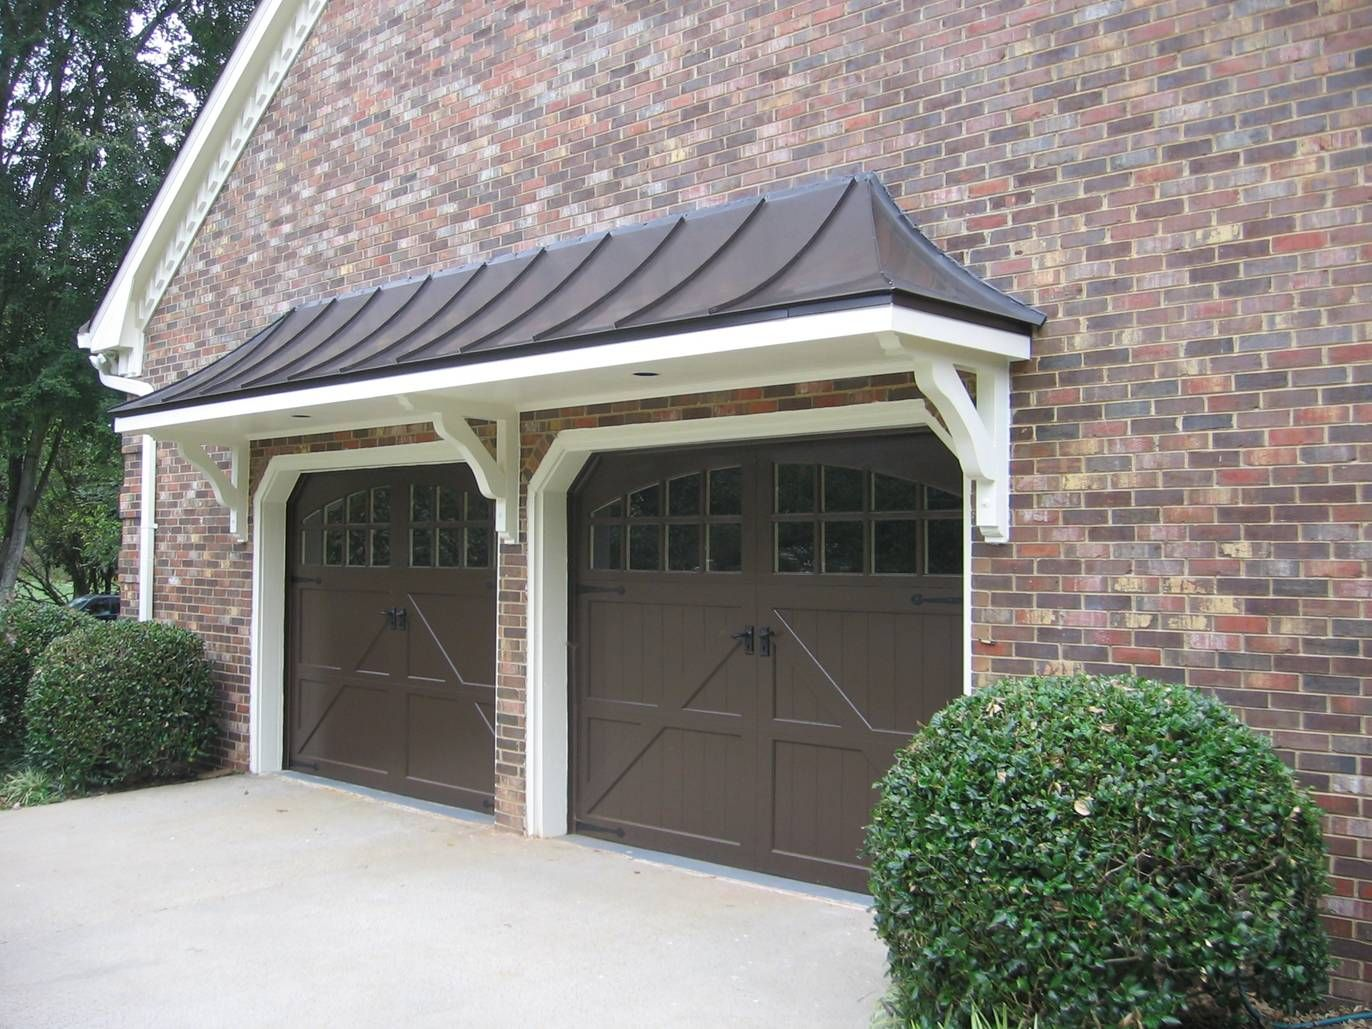 Classica northampton garage door white 9 x 8 no windows - Metal Roof Bracket Portico Over Double Garage Doors Designed And Built By Georgia Front Porch